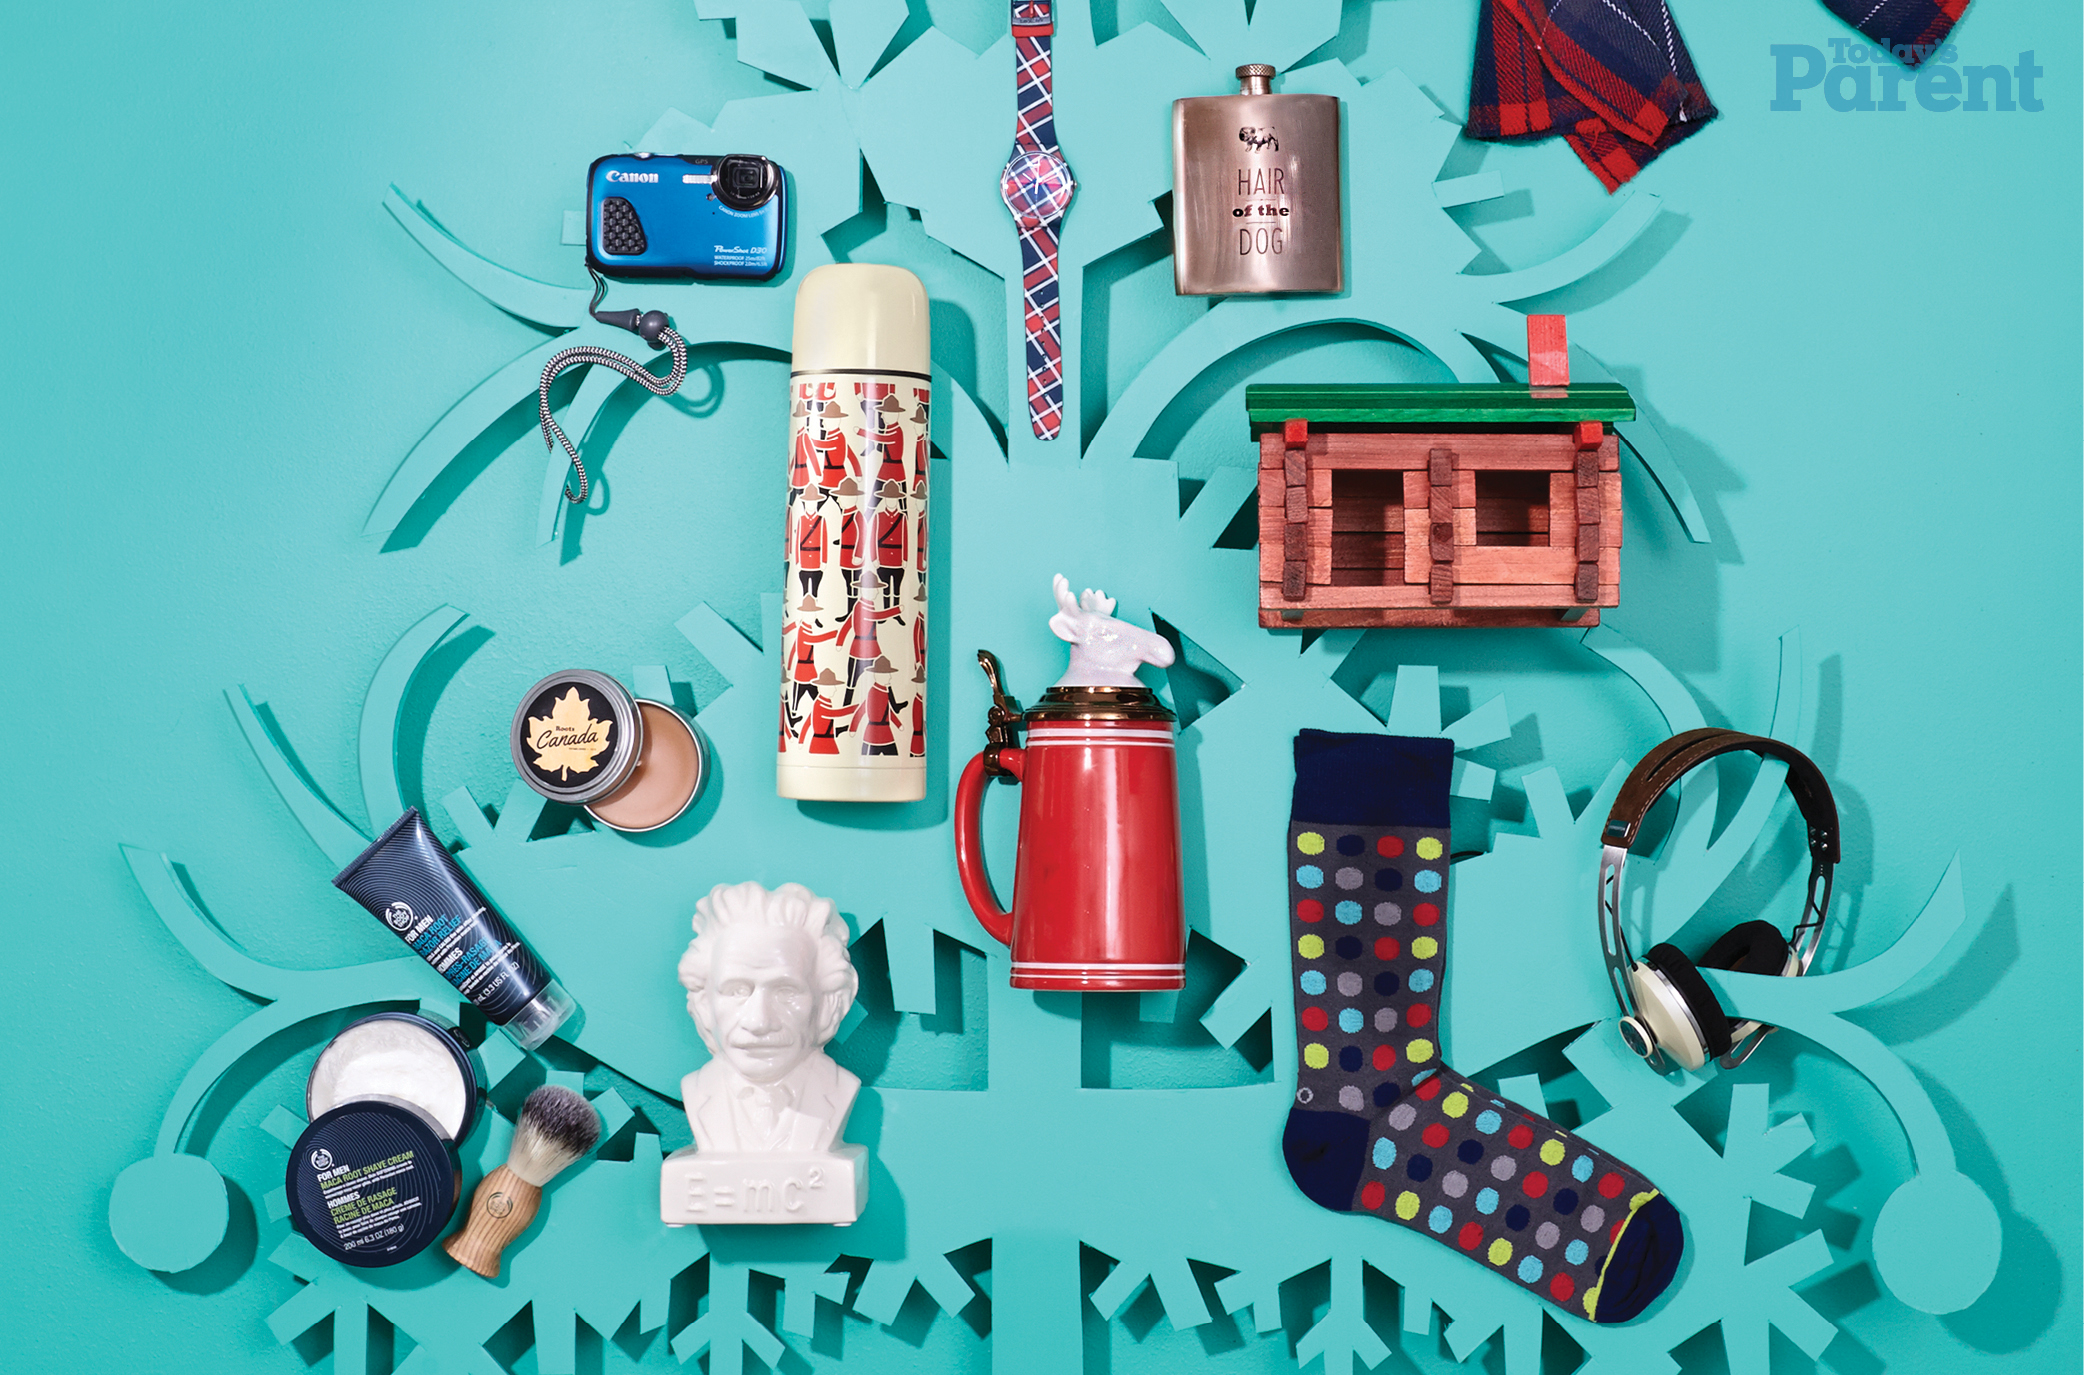 Holiday gift guide 2014: 10 gifts for dad - Today\'s Parent